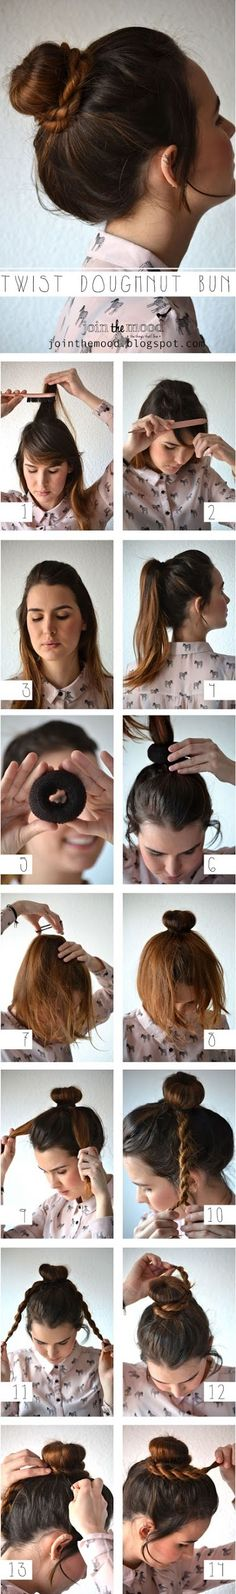 How To Make Twist Doughnut Bun For Your Hair | She's Beautiful